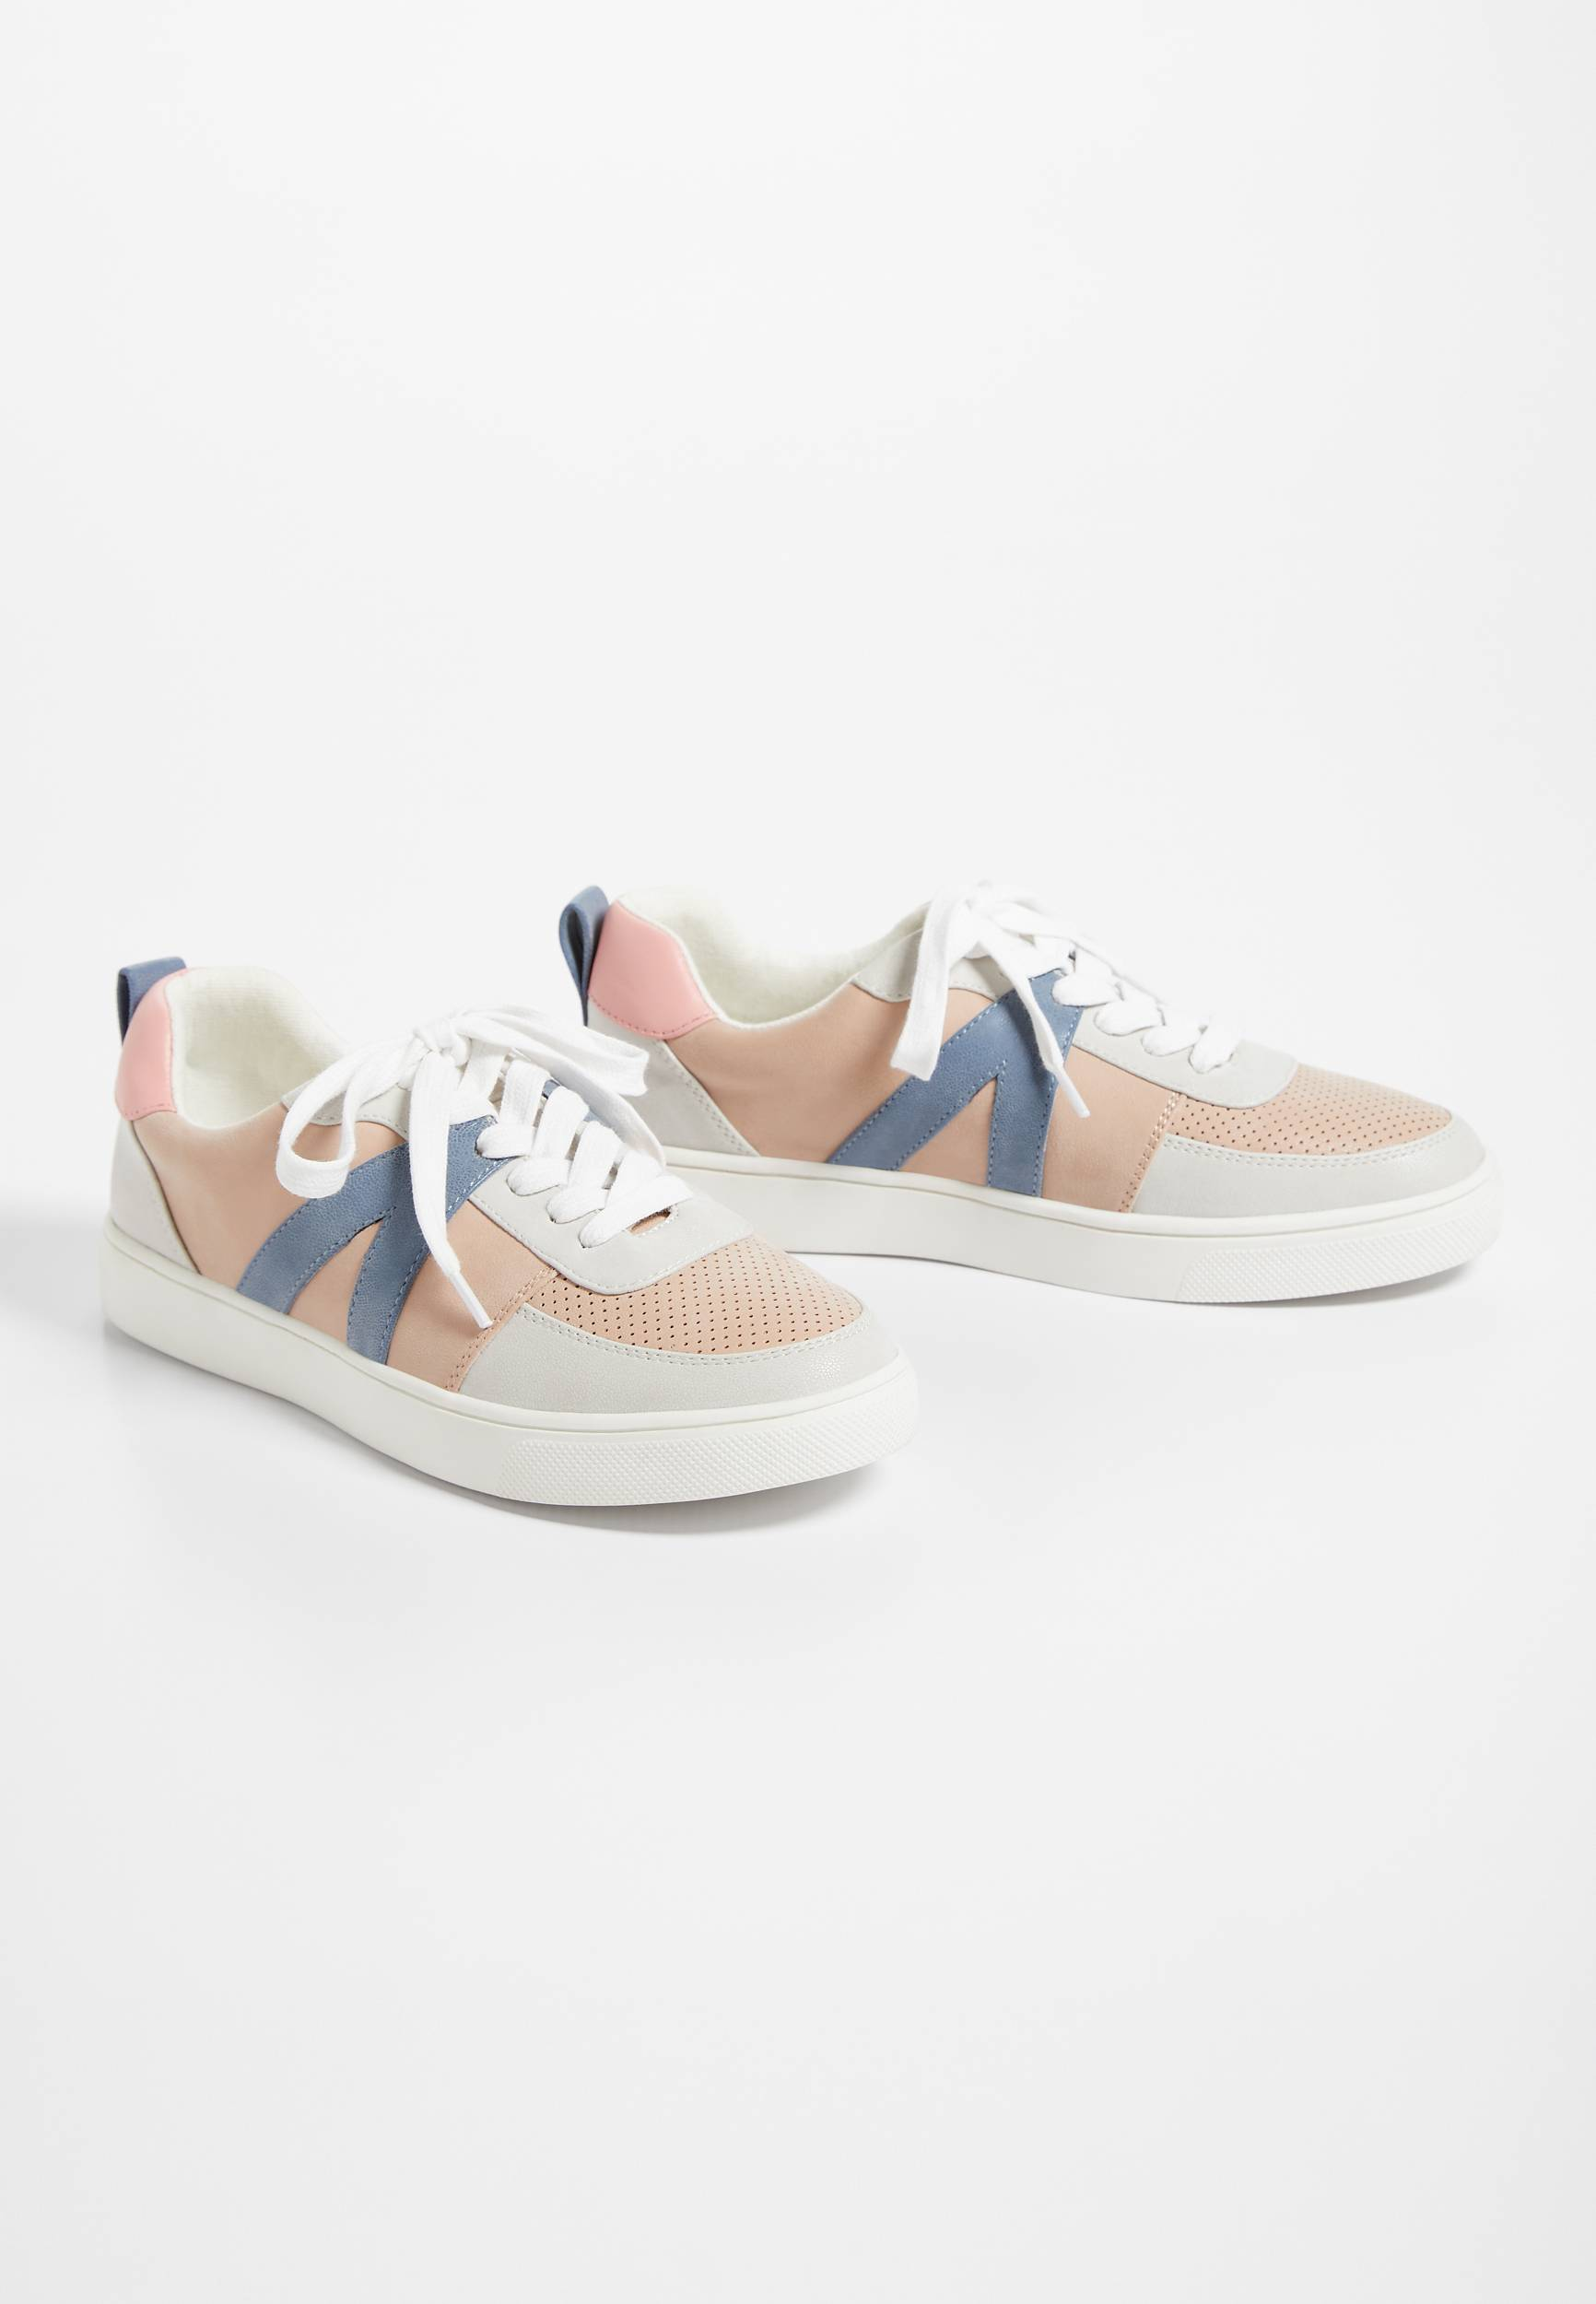 Maurices Womens Shelby Blush Colorblock Lace Up Sneakers Pink  -  7 1/2